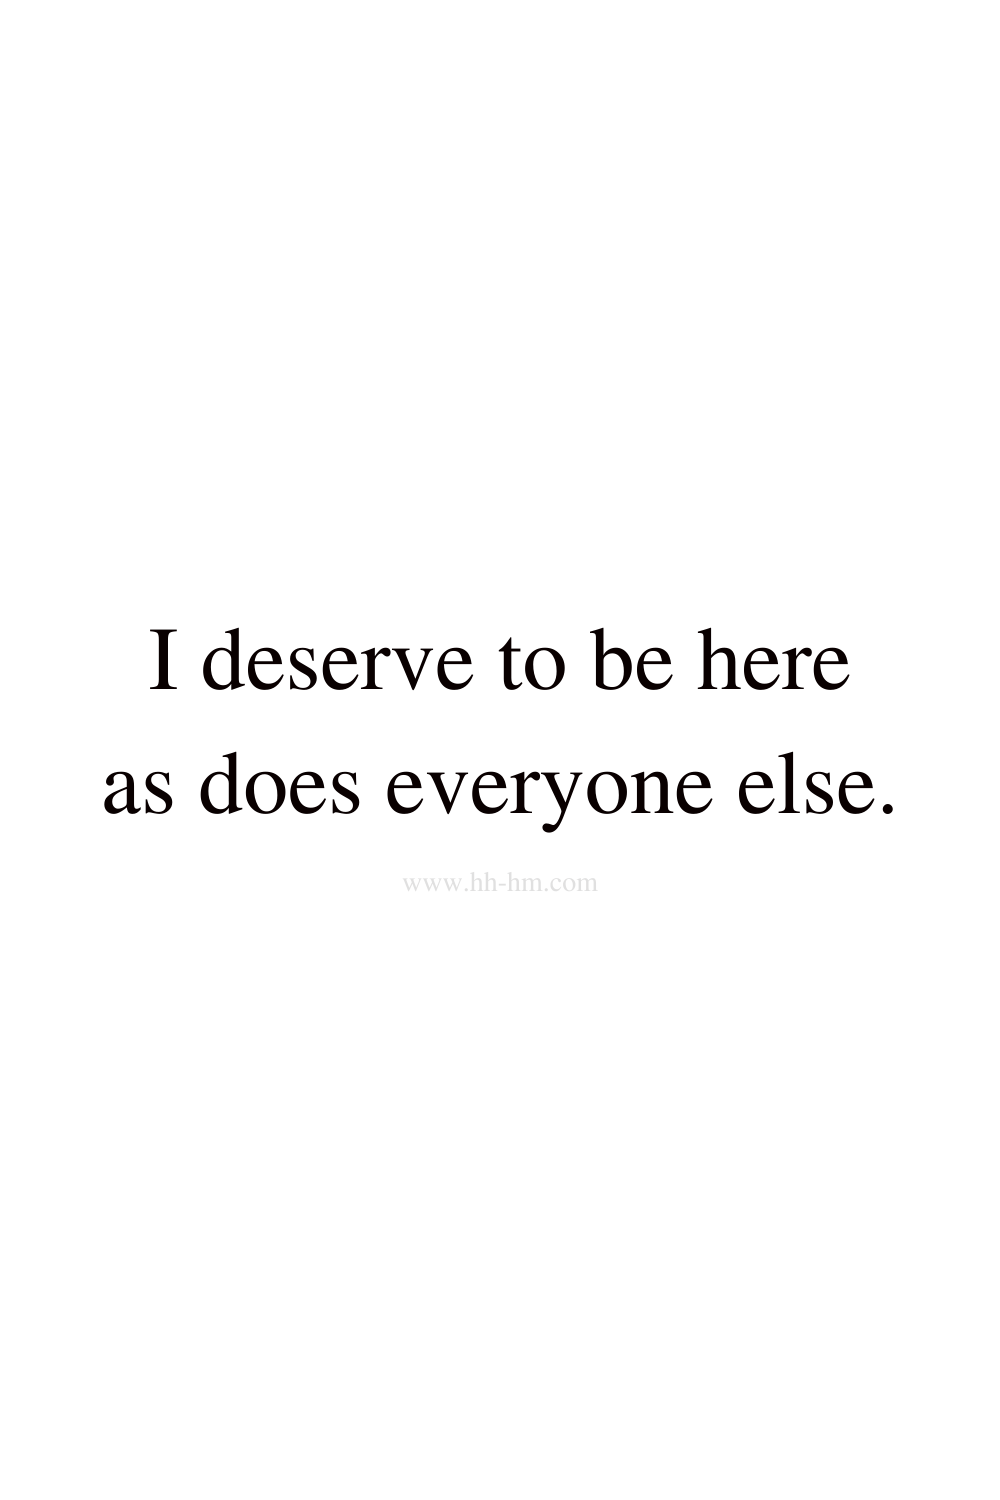 I deserve to be here, as does everyone else - self love and self confidence morning affirmations